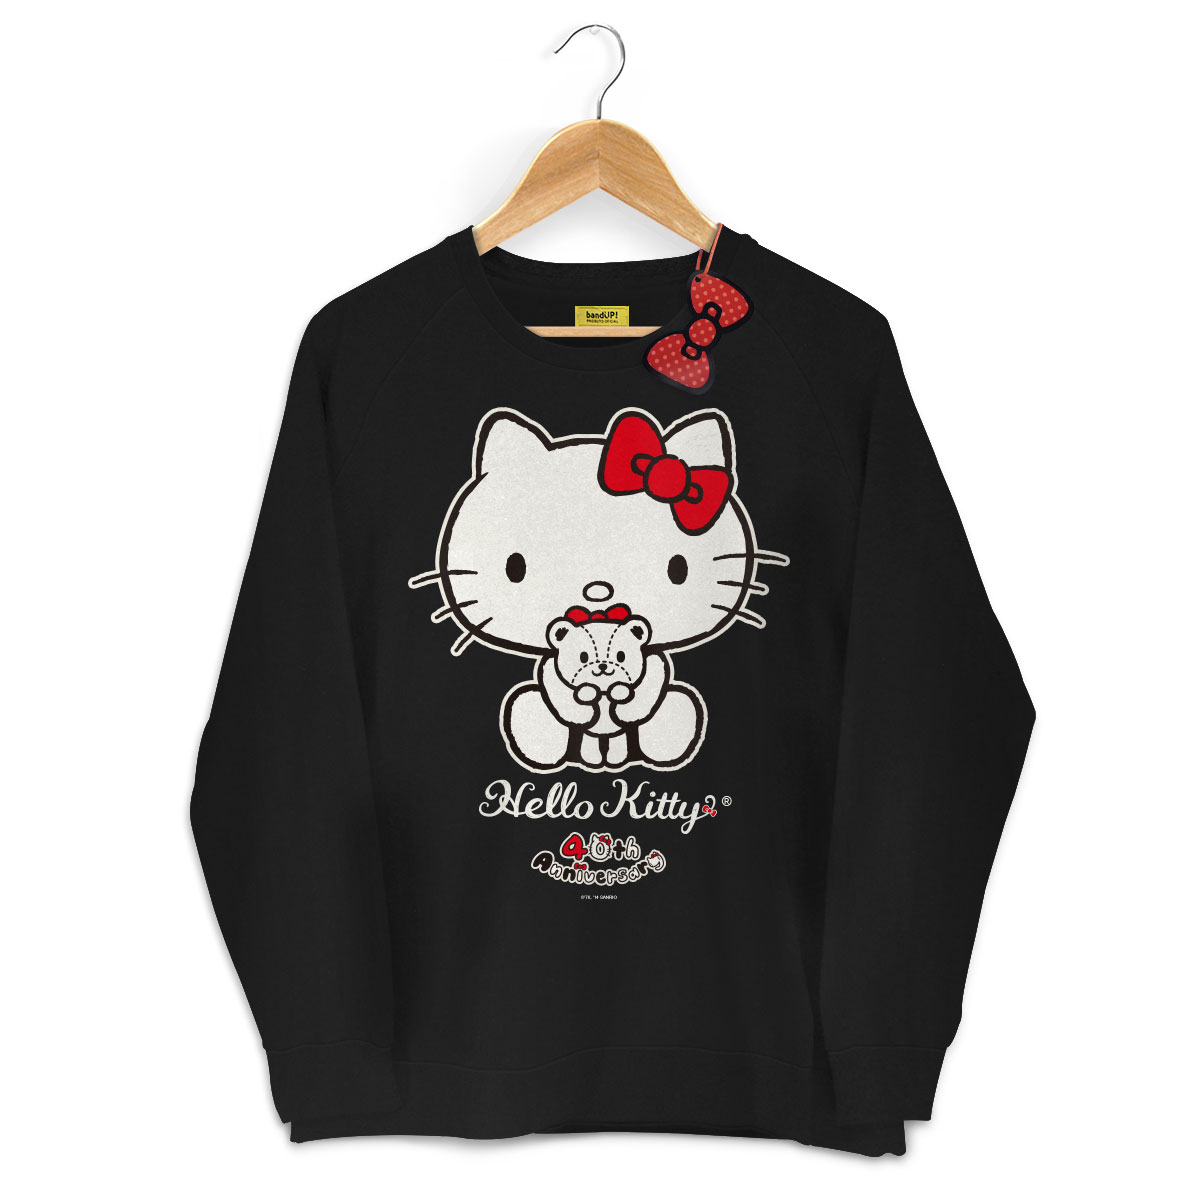 Moletinho Preto Hello Kitty 40th Ribbon 3